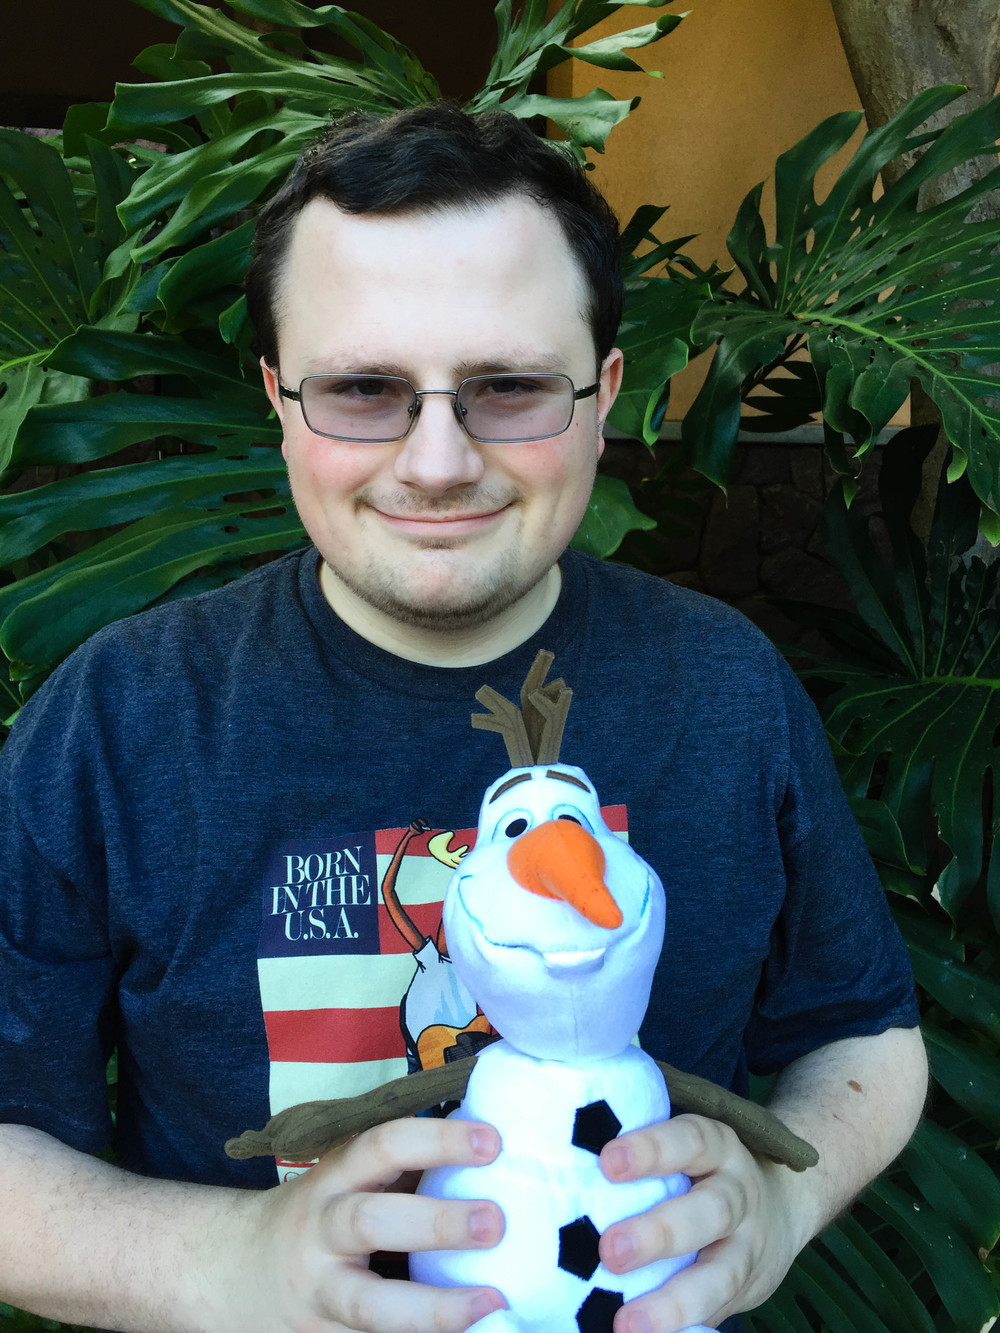 Olaf was in Hawaii!